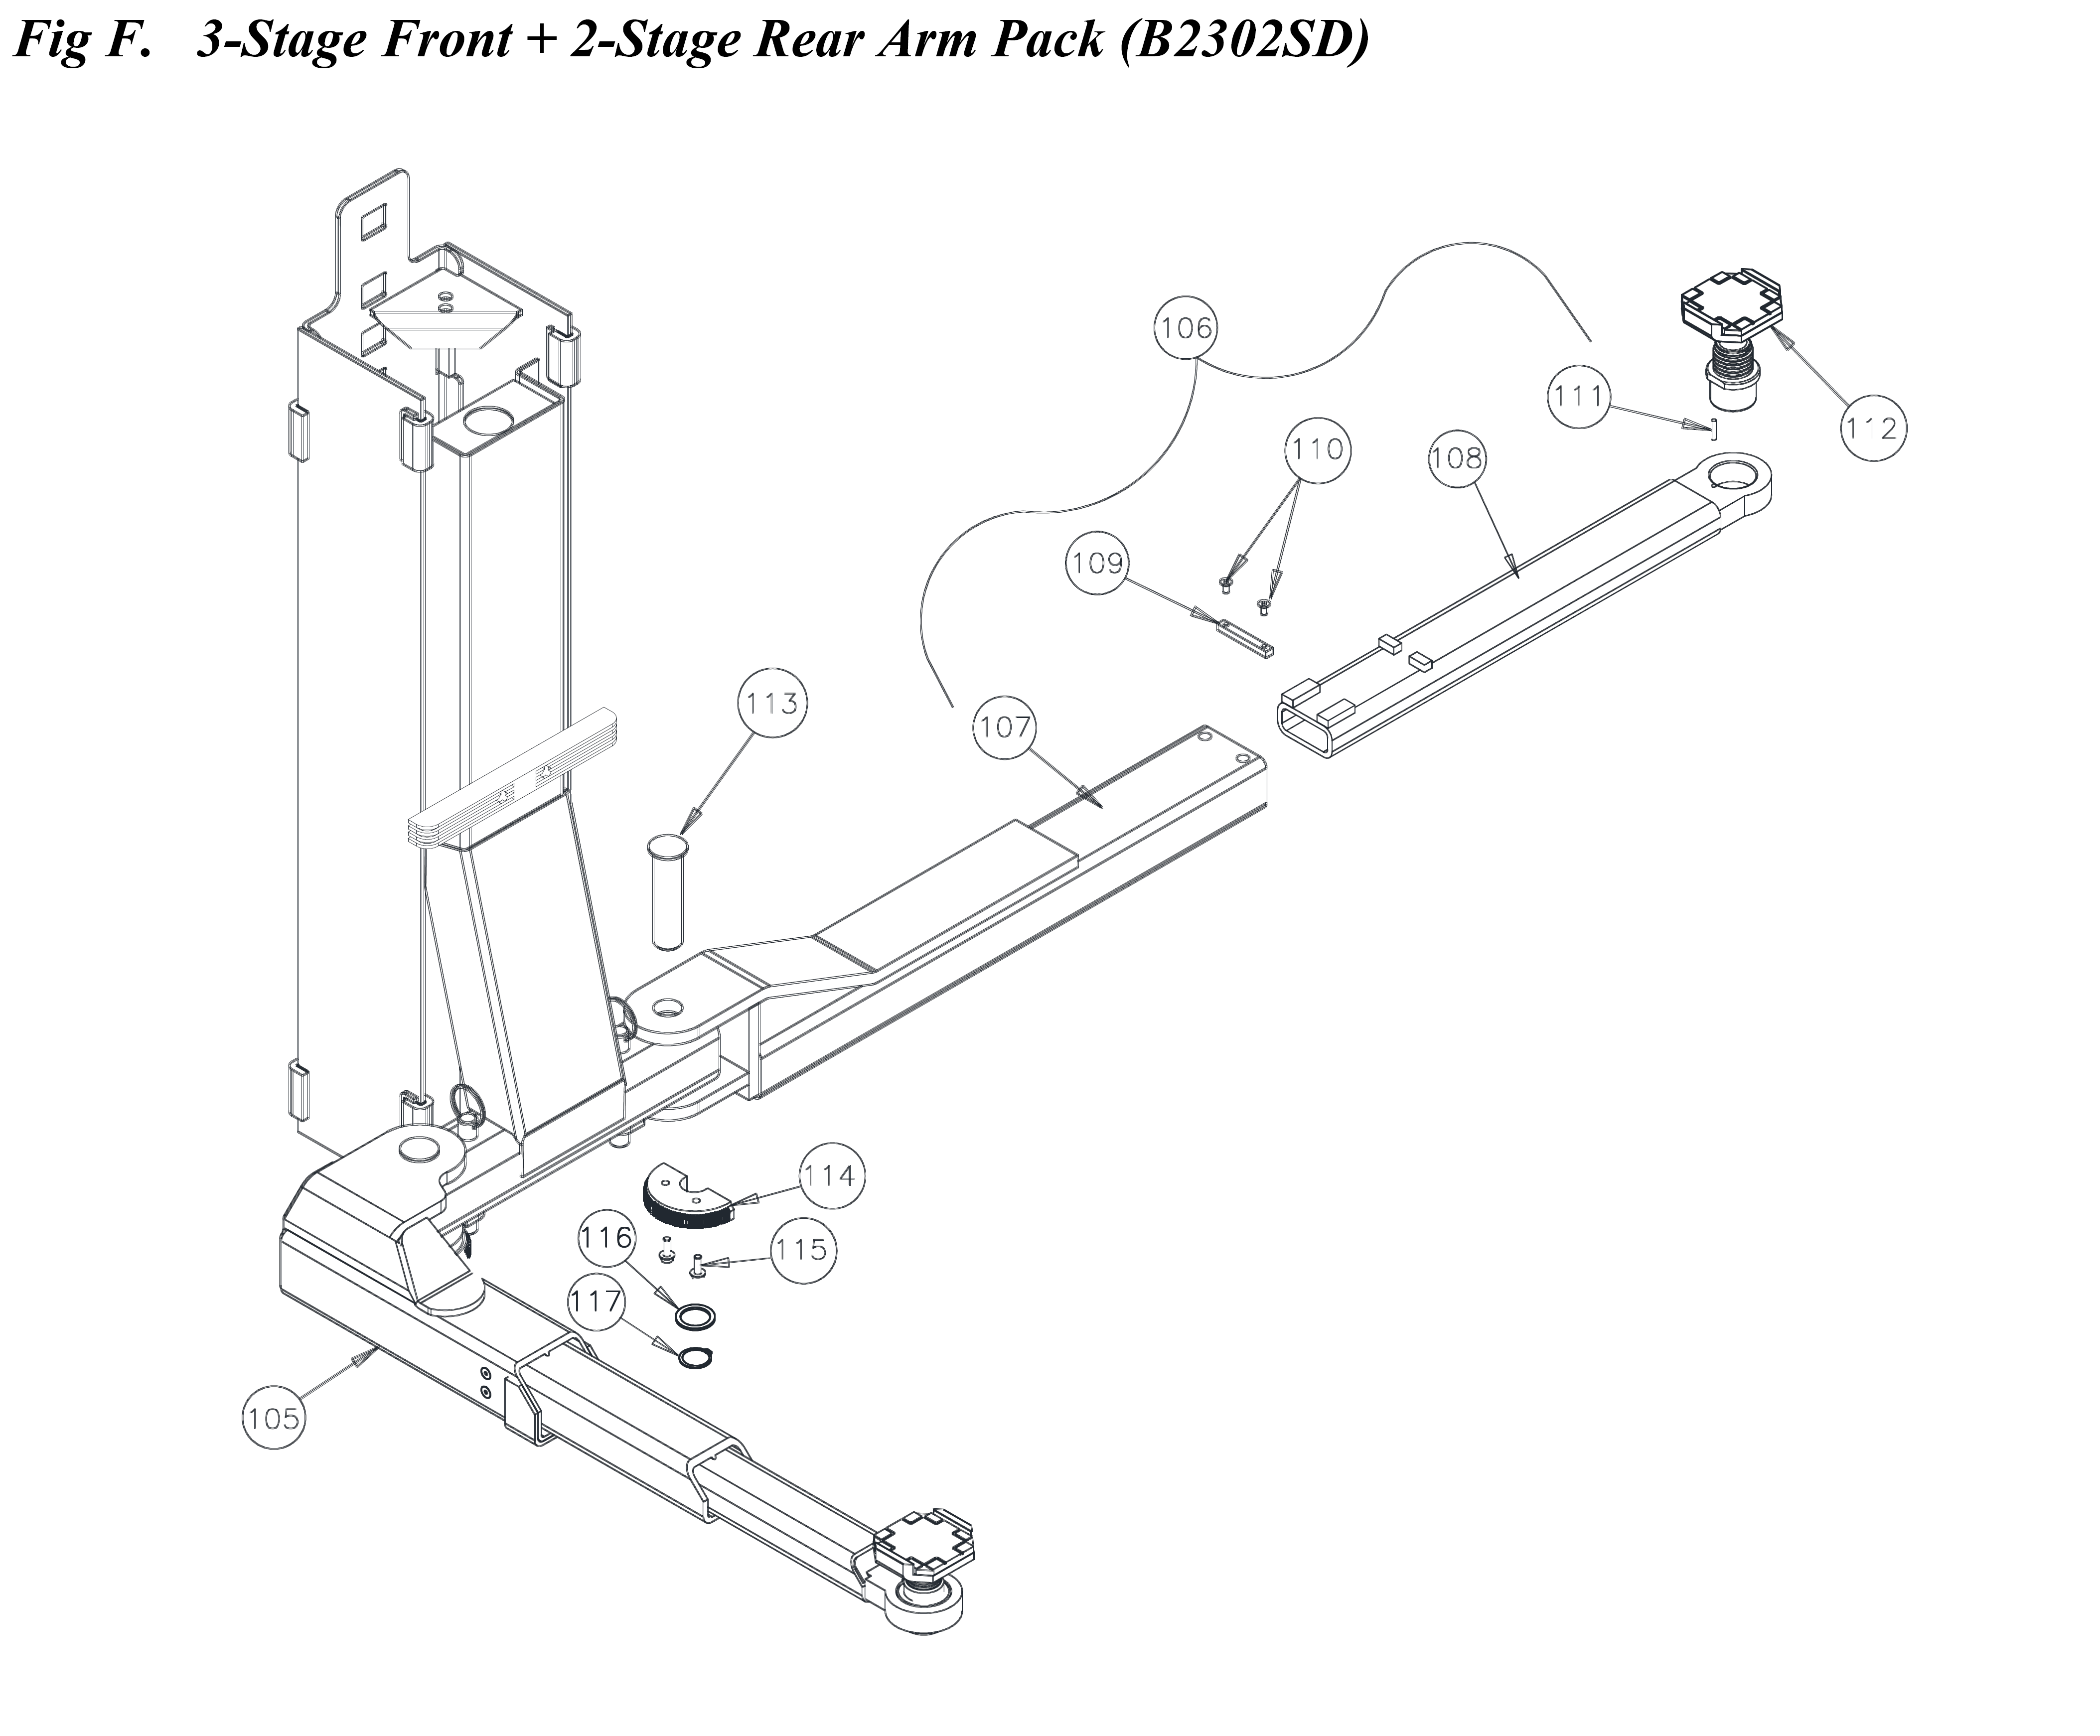 cl10-3-stage-front-2-stage-rear-arm-pack-diagram.png